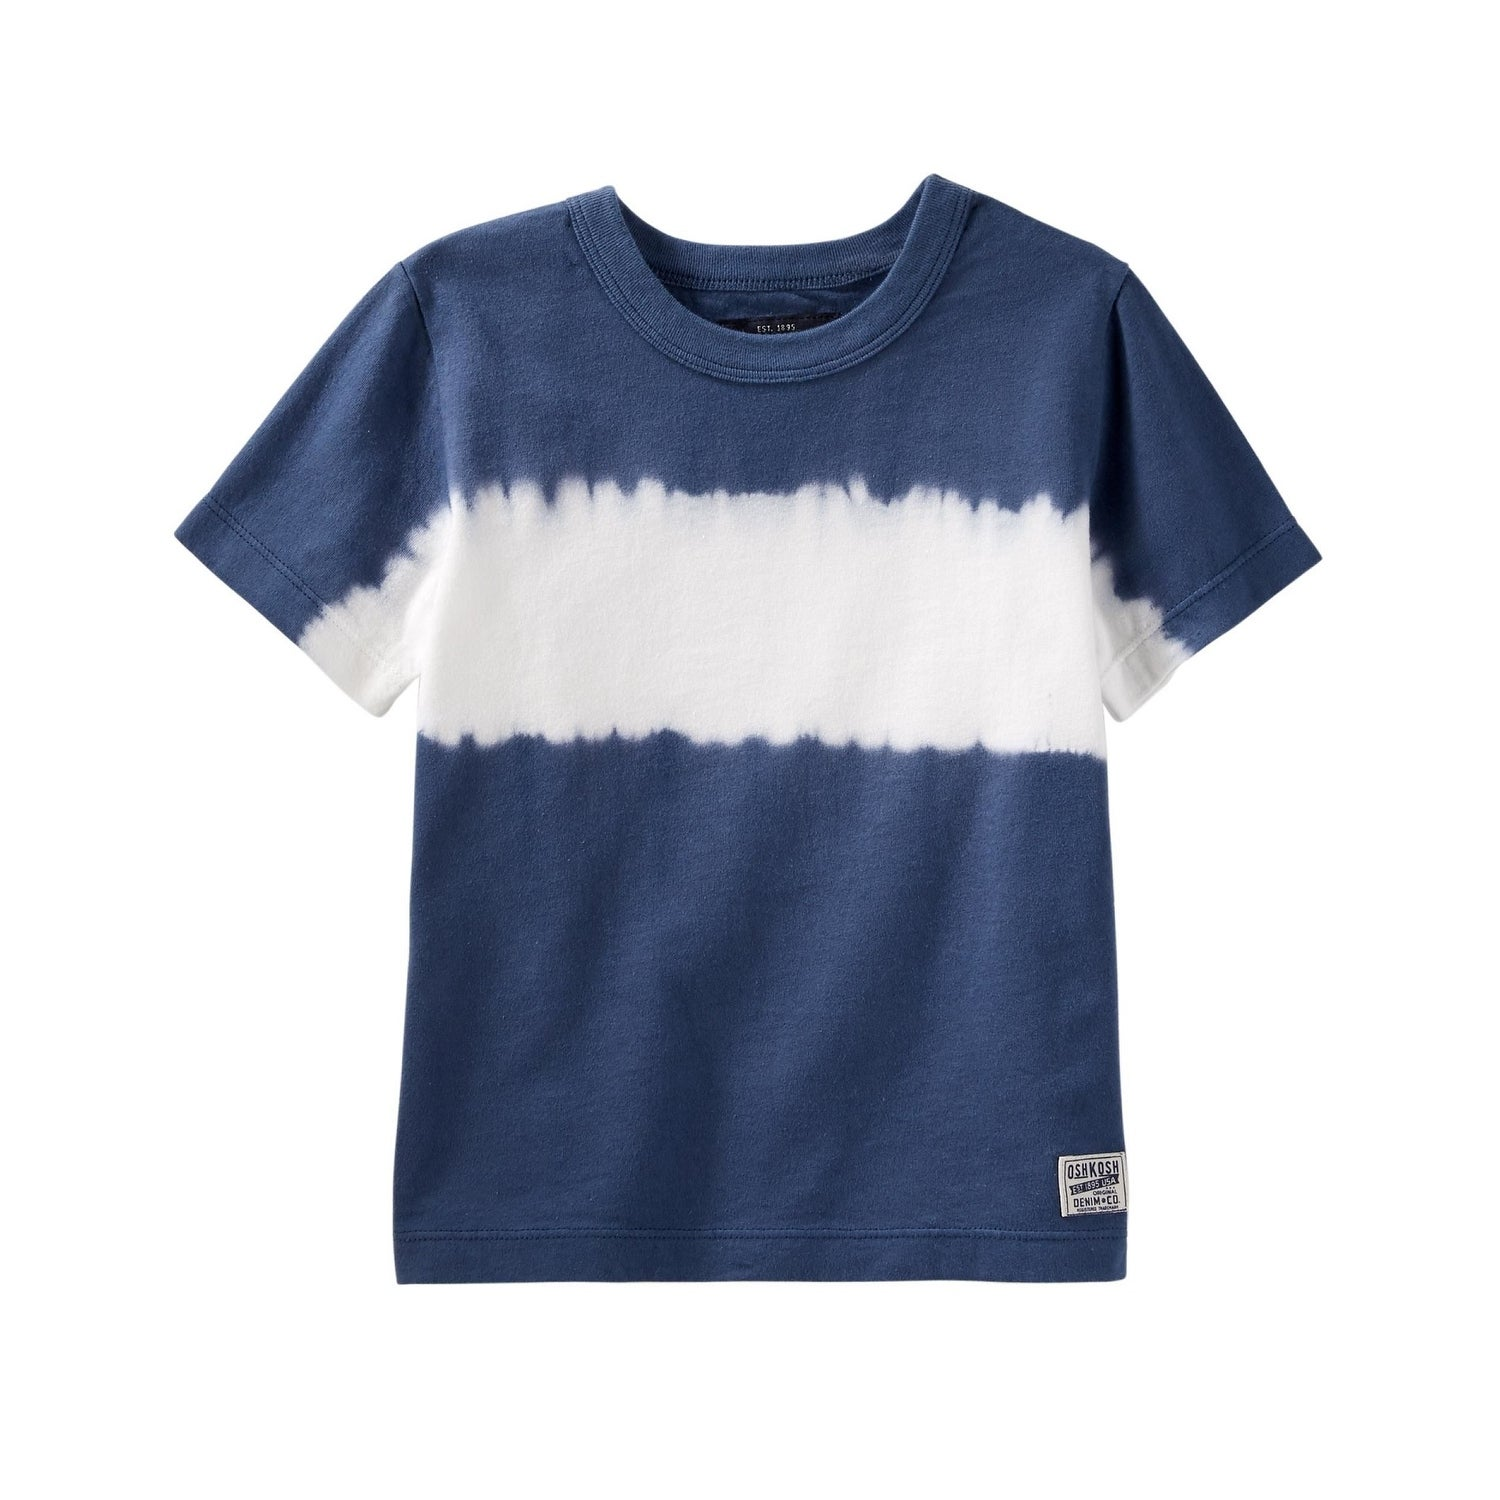 f366f4f0 OshKosh B'Gosh Children's Clothing | Shop our Best Clothing & Shoes Deals  Online at Overstock